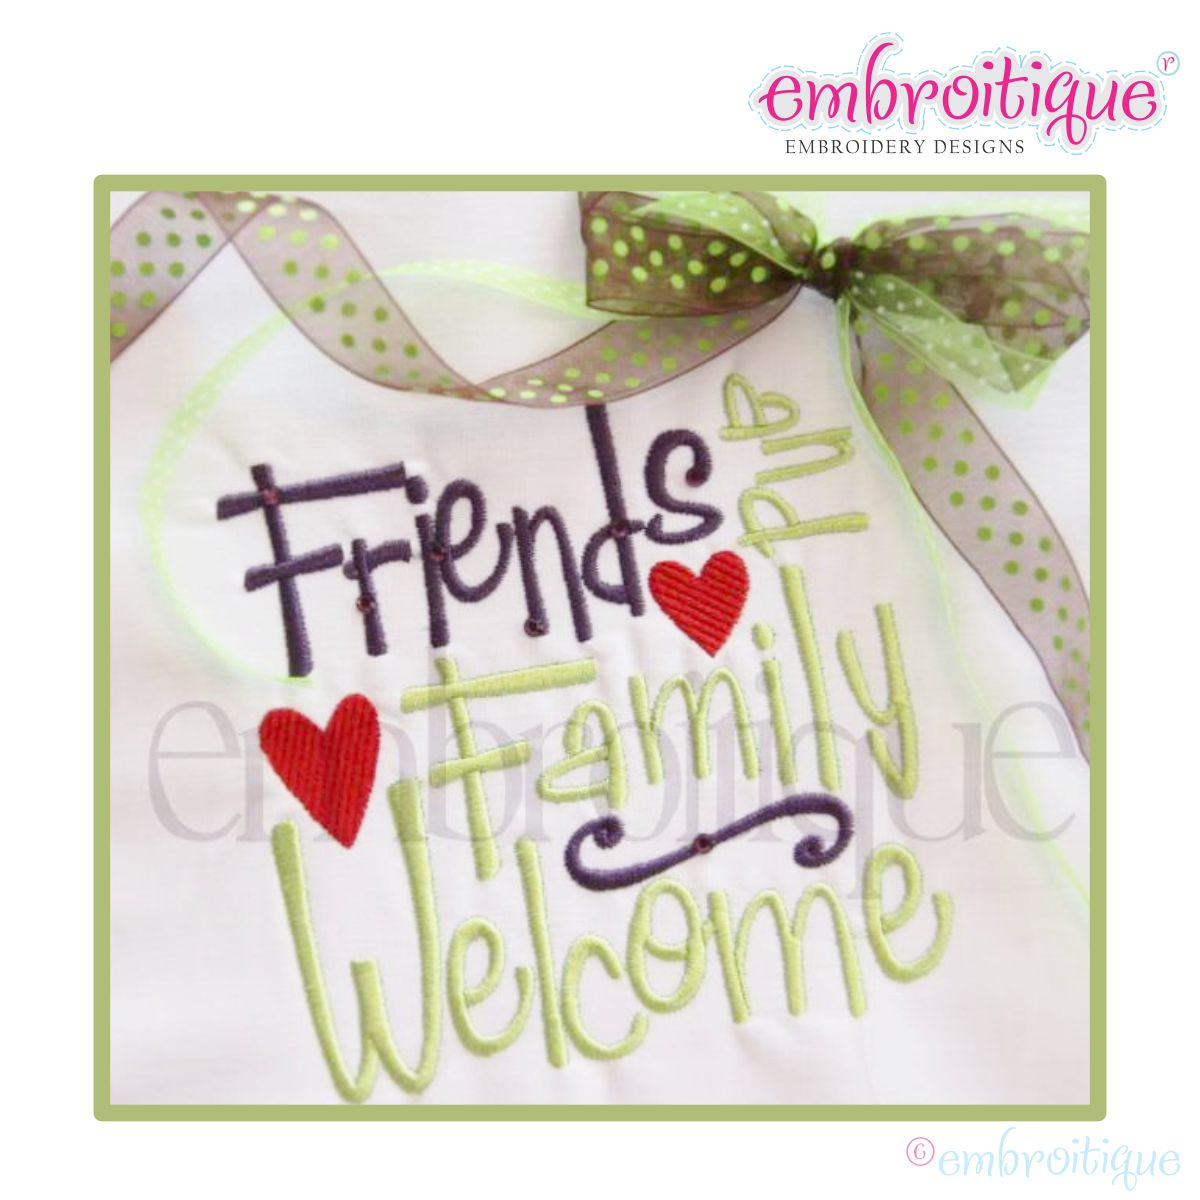 Ritzy Family Welcome Word Block Home Family Wood Blocks Home Decor Family Welcome Word Block Home Decor Embroidery Designs Friends Friends home decor Family Blocks Home Decor